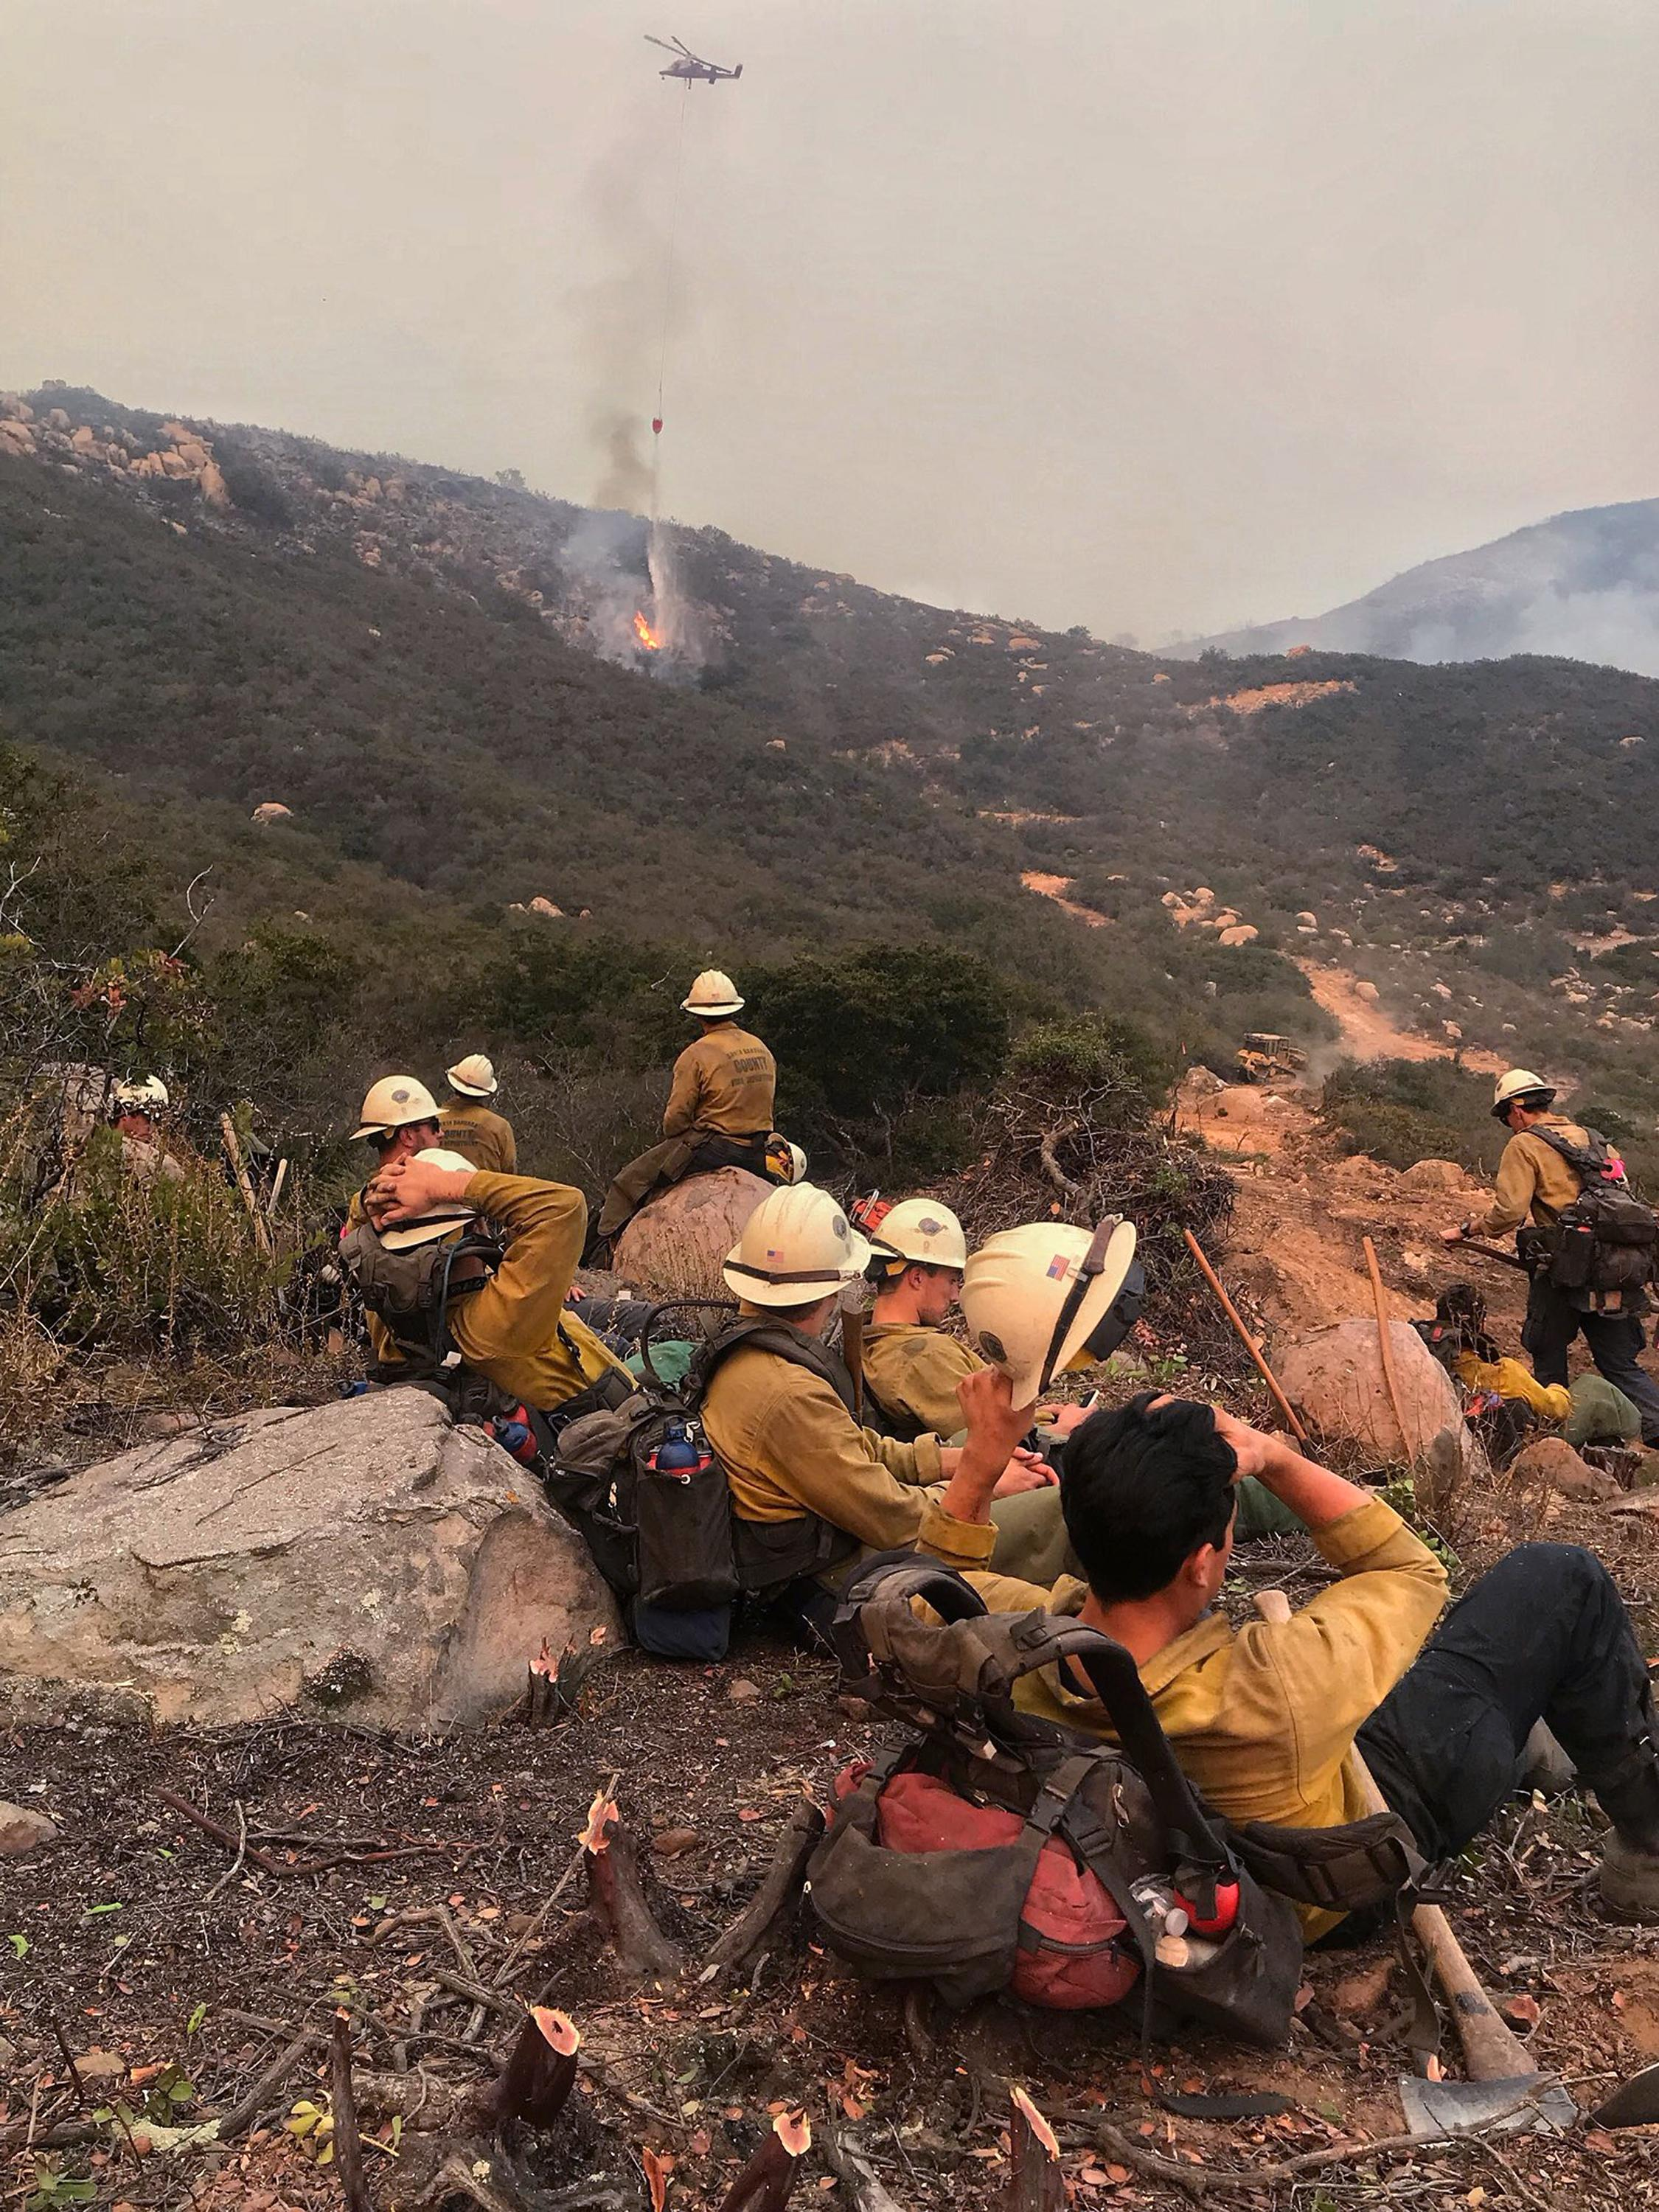 In this photo provided by the Santa Barbara County Fire Department, a Santa Barbara County Fire Crew rests after cutting a fuel break above Bella Vista Drive in Montecito, Calif., as a helicopter makes a water drop on flames as the fight against a wildfire continues Tuesday, Dec. 12, 2017. (Mike Eliason/Santa Barbara County Fire Department via AP)